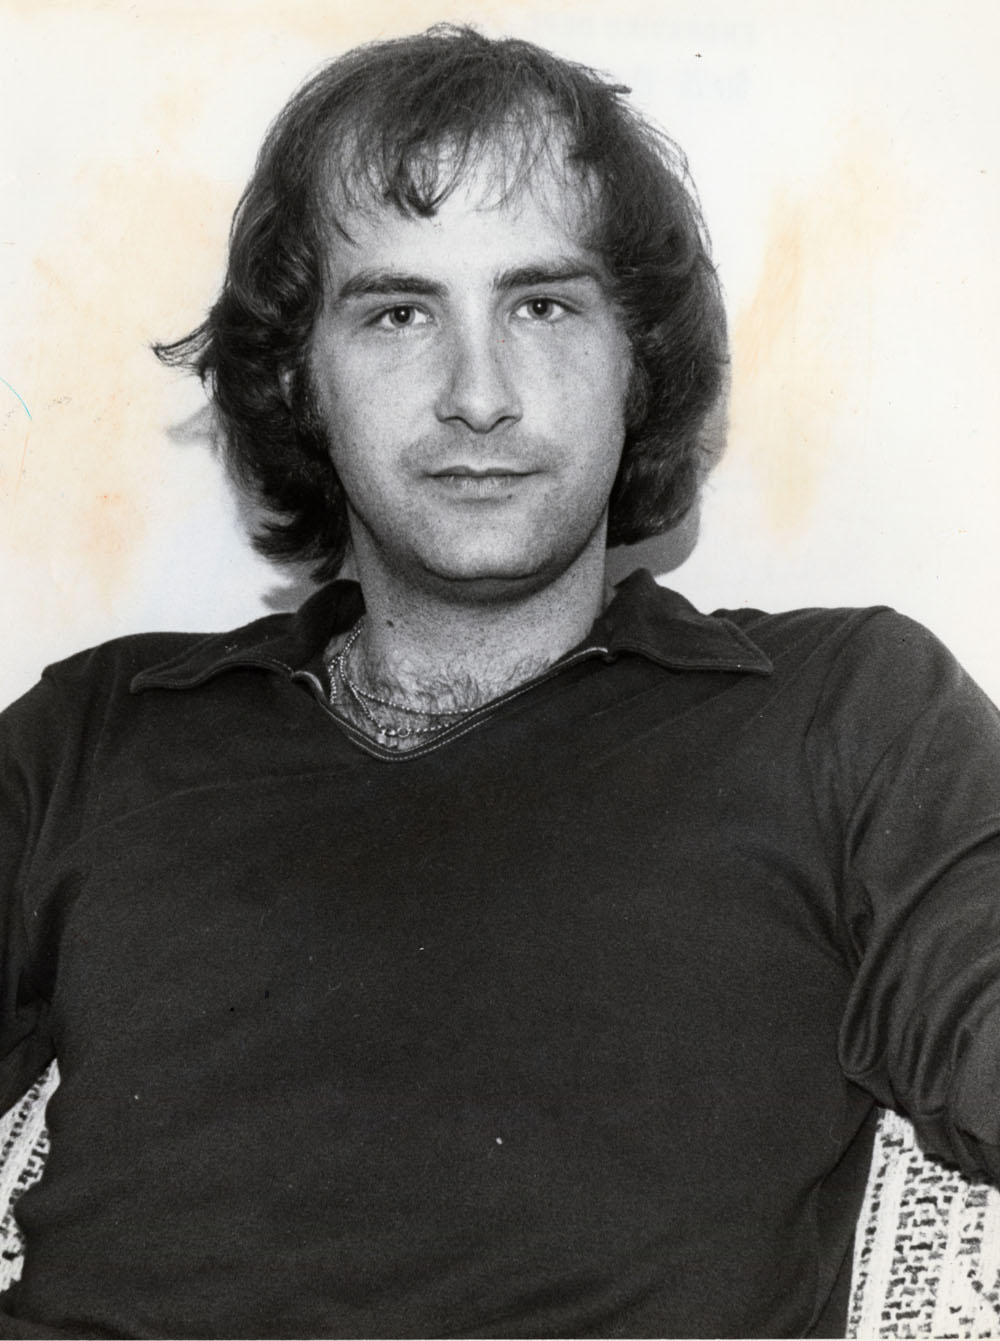 Multi-personality figure BILLY MILLIGAN -- Black & white file mug shot -- William (Billy) Milligan once diagnosed as having 10 personalities. Photo taken by Glen Cumberledge c. 1979.